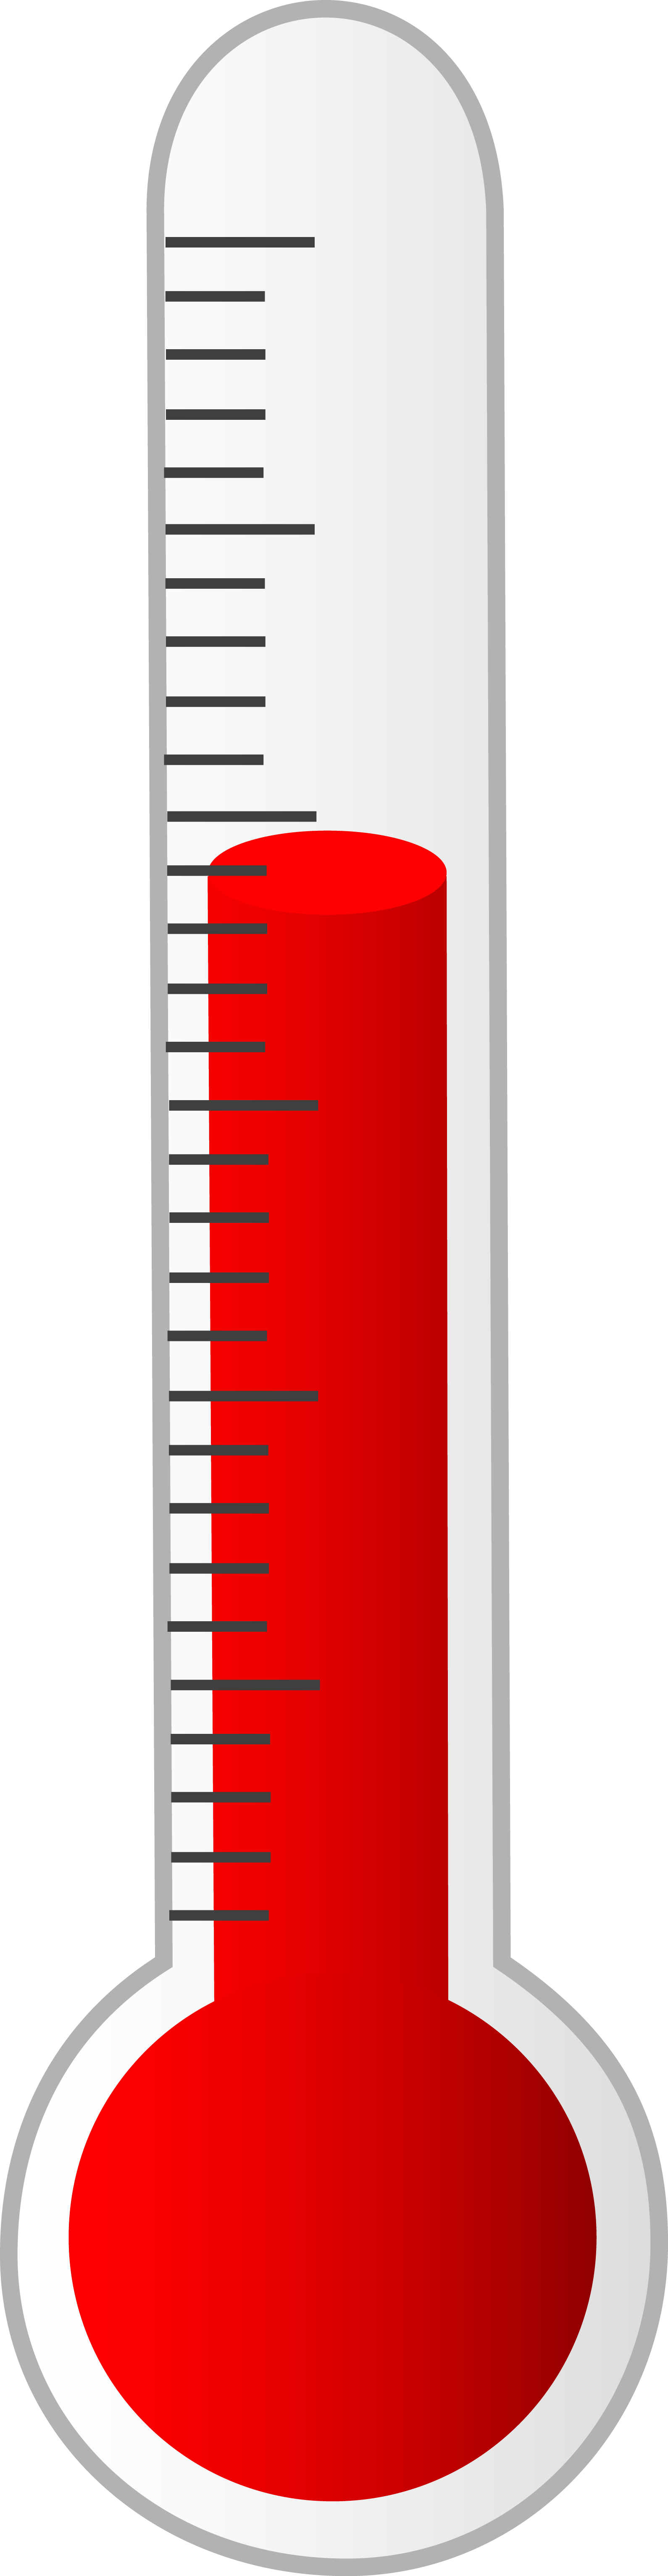 Fundraising Thermometer Png